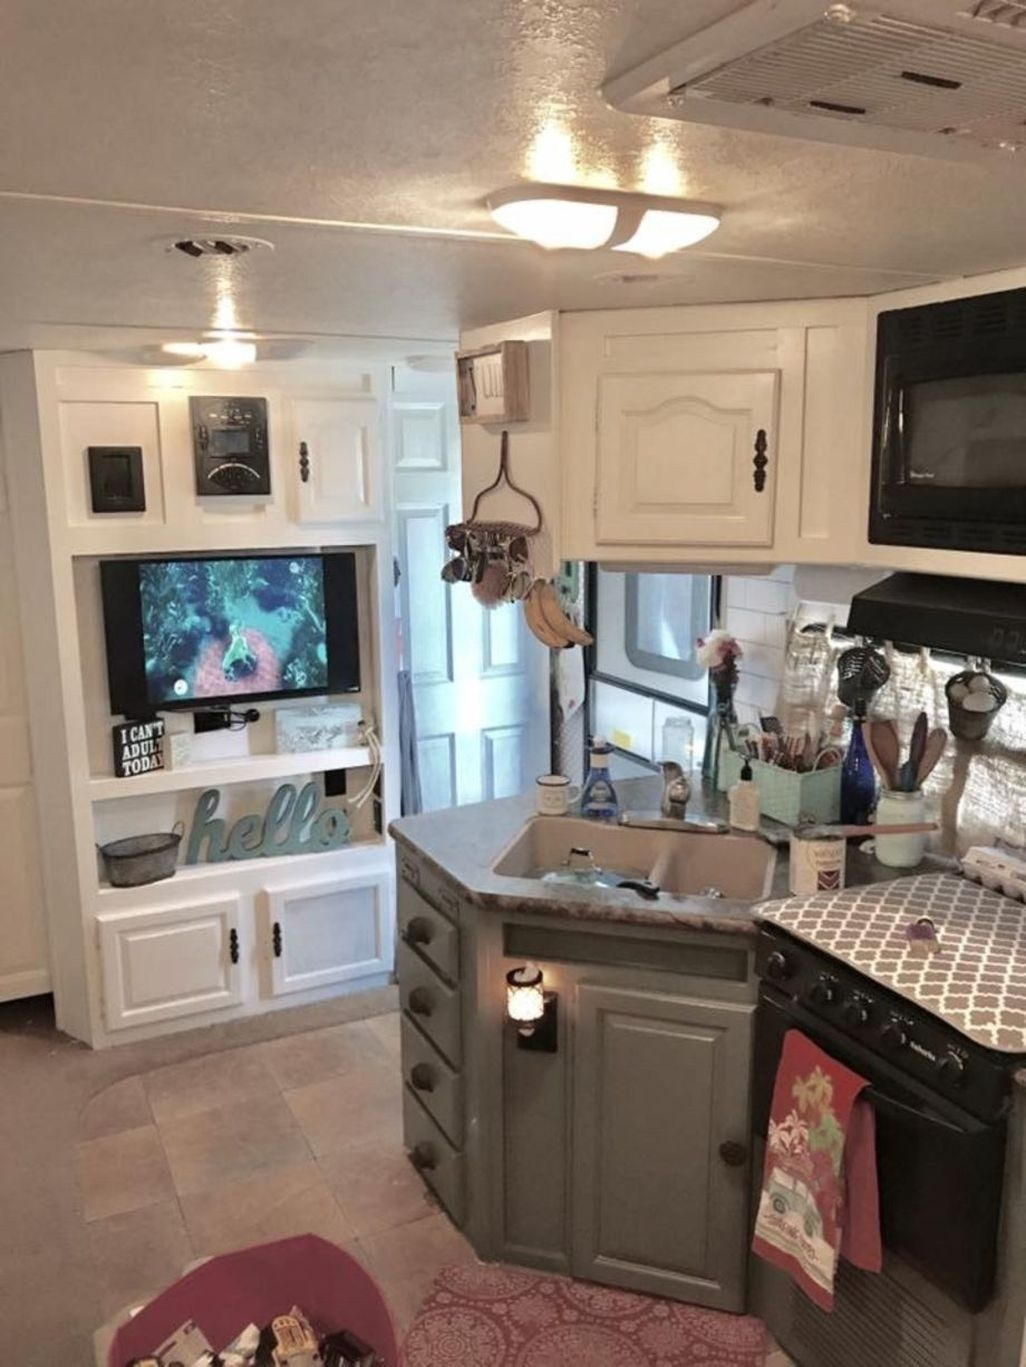 Awesome Rv Living Remodel Design Ideas 10